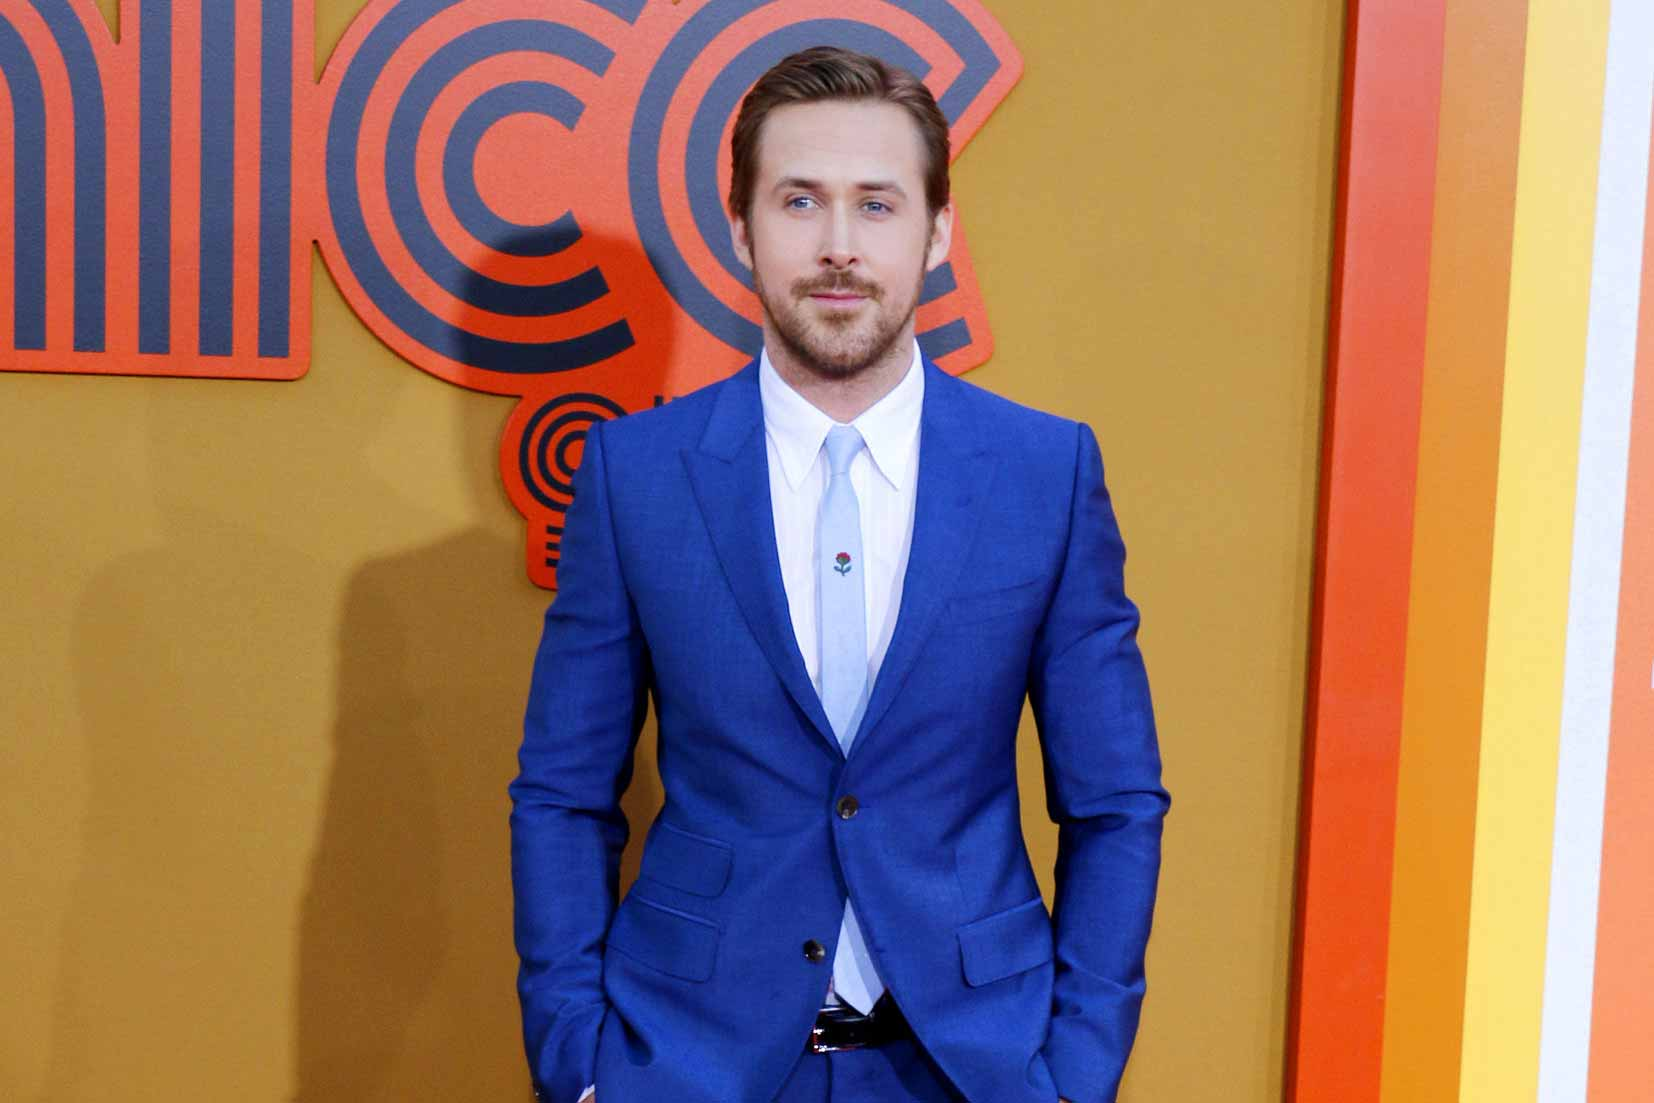 How to Wear a Suit like Ryan Gosling